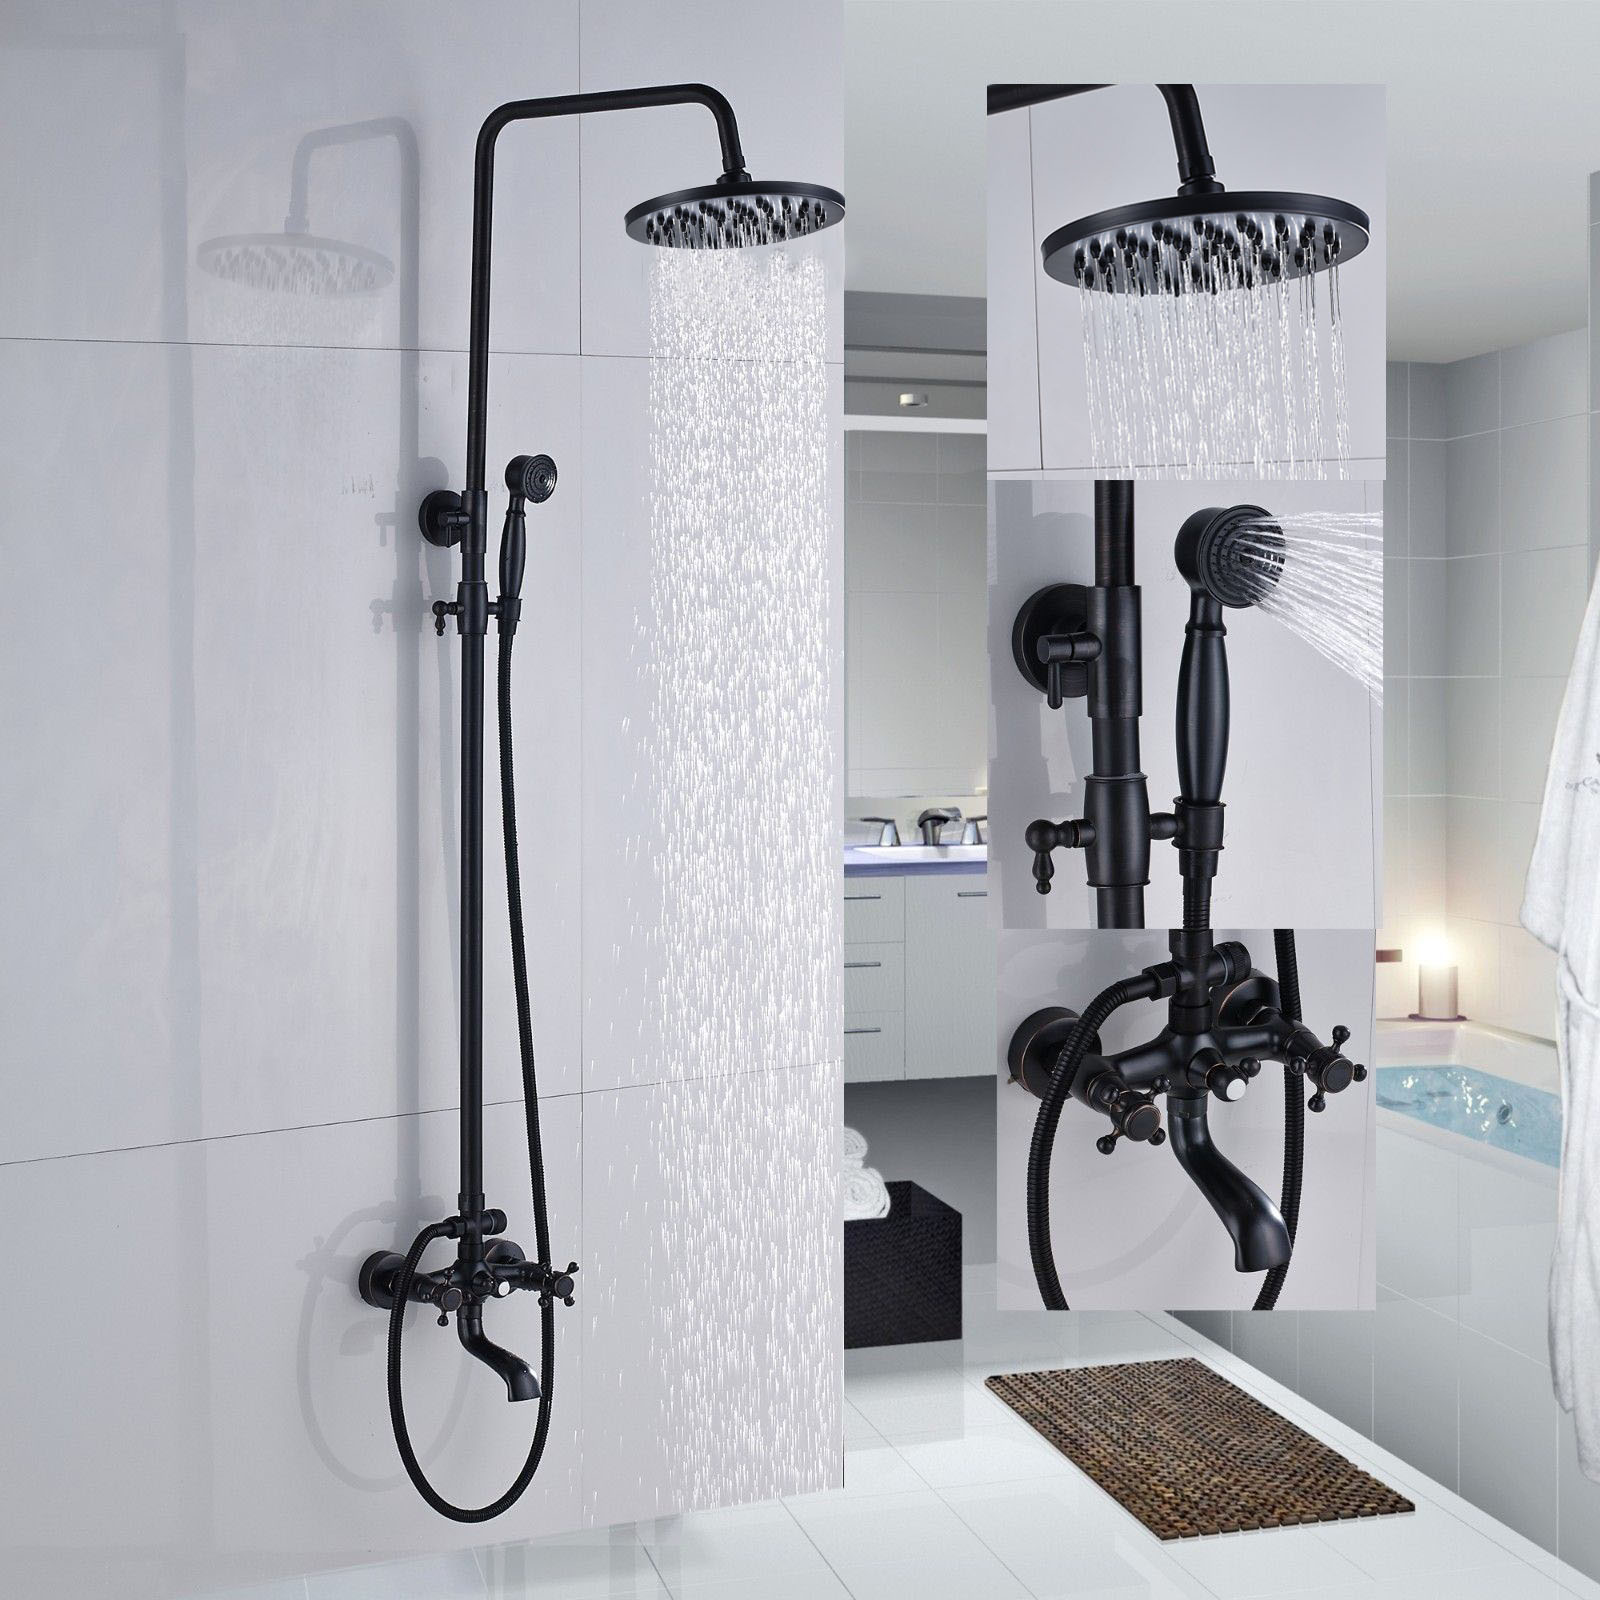 Shower Faucets Oil Rubbed Bronze Bathroom Rainfall Shower Faucet Set Mixer Tap With Hand Sprayer Wall Mounted Zd227 Shower System Aliexpress